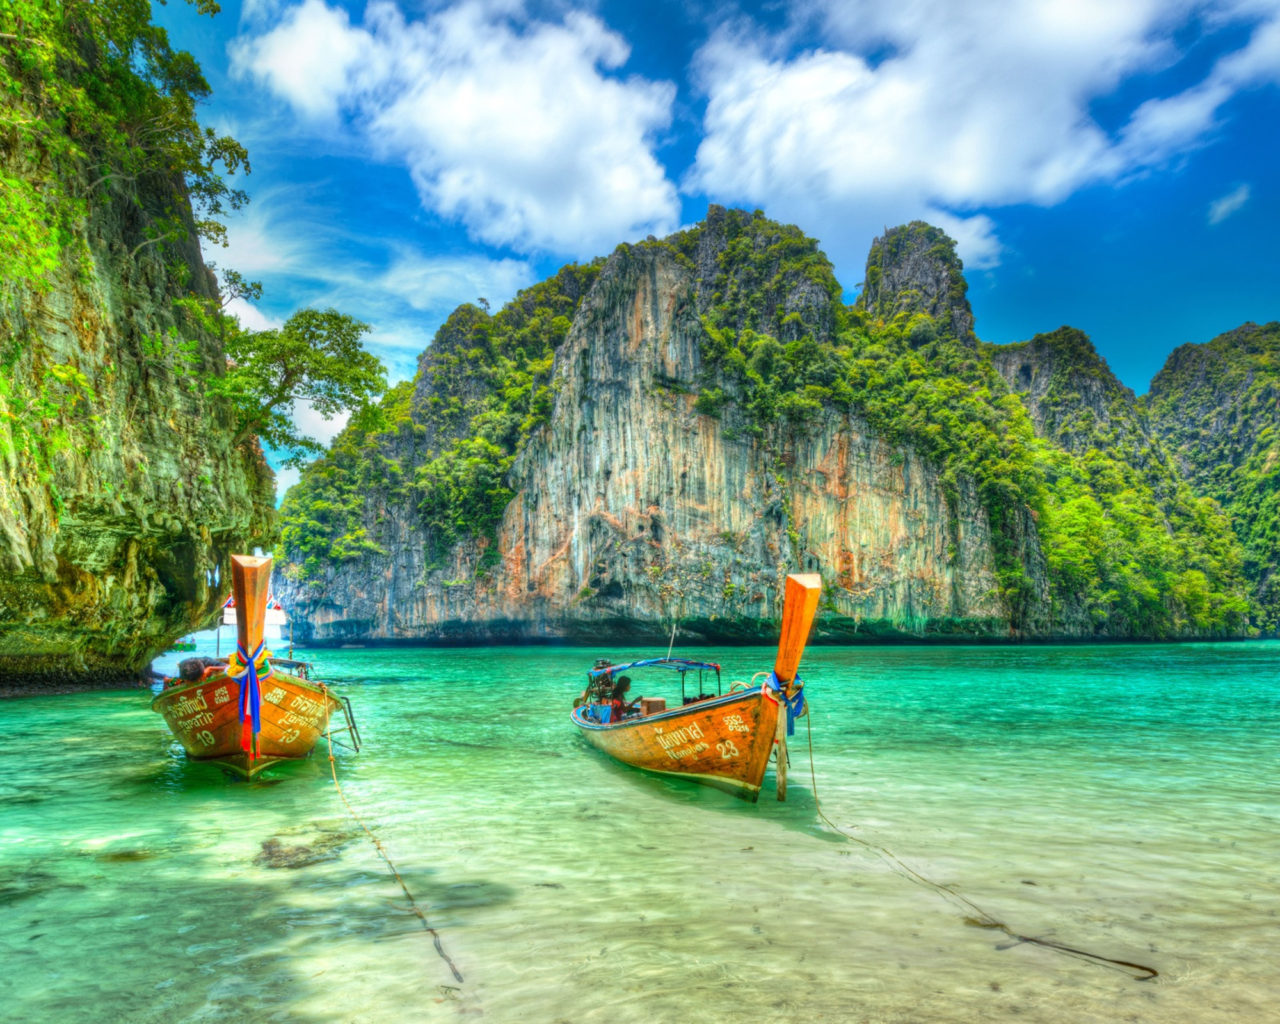 Iphone 5 Panorama Wallpaper Maya Bay Ko Phi Phi Leh In Thailand Boat Exotic Desktop